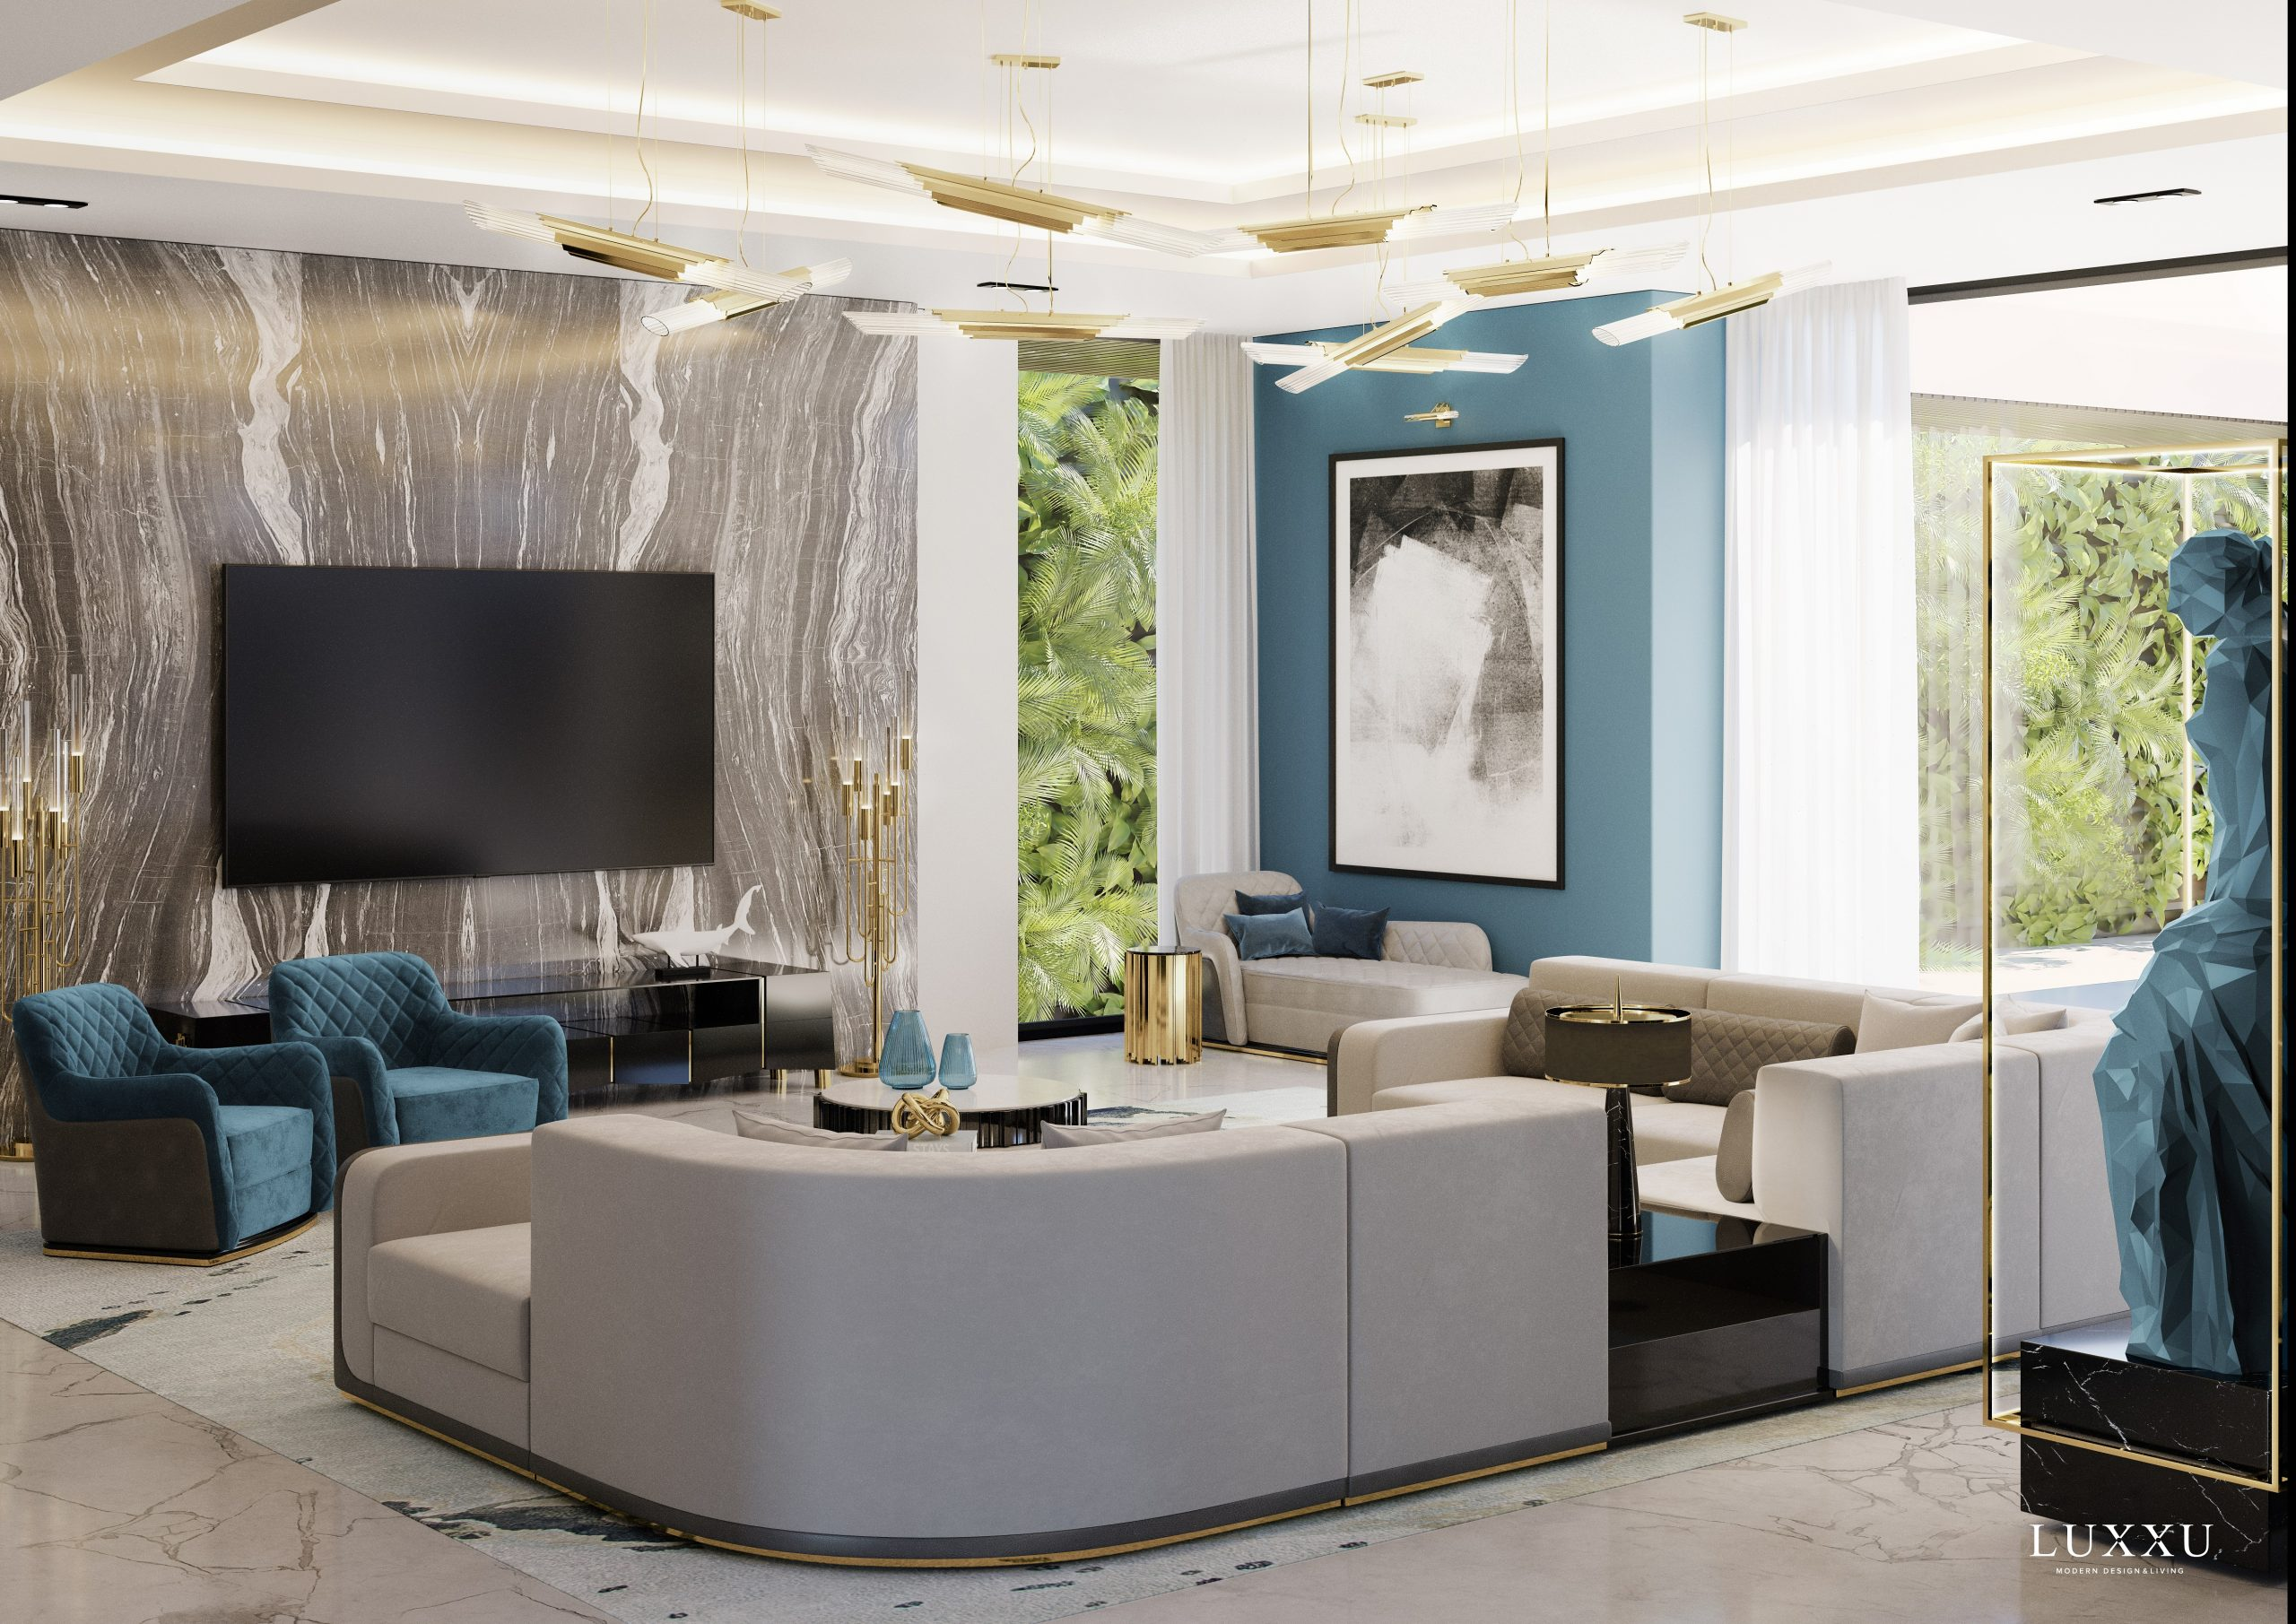 Entertainment Room Design - A Game Of Luxury And Sophistication entertainment room design Entertainment Room Design – A Game Of Luxury And Sophistication 00022 1